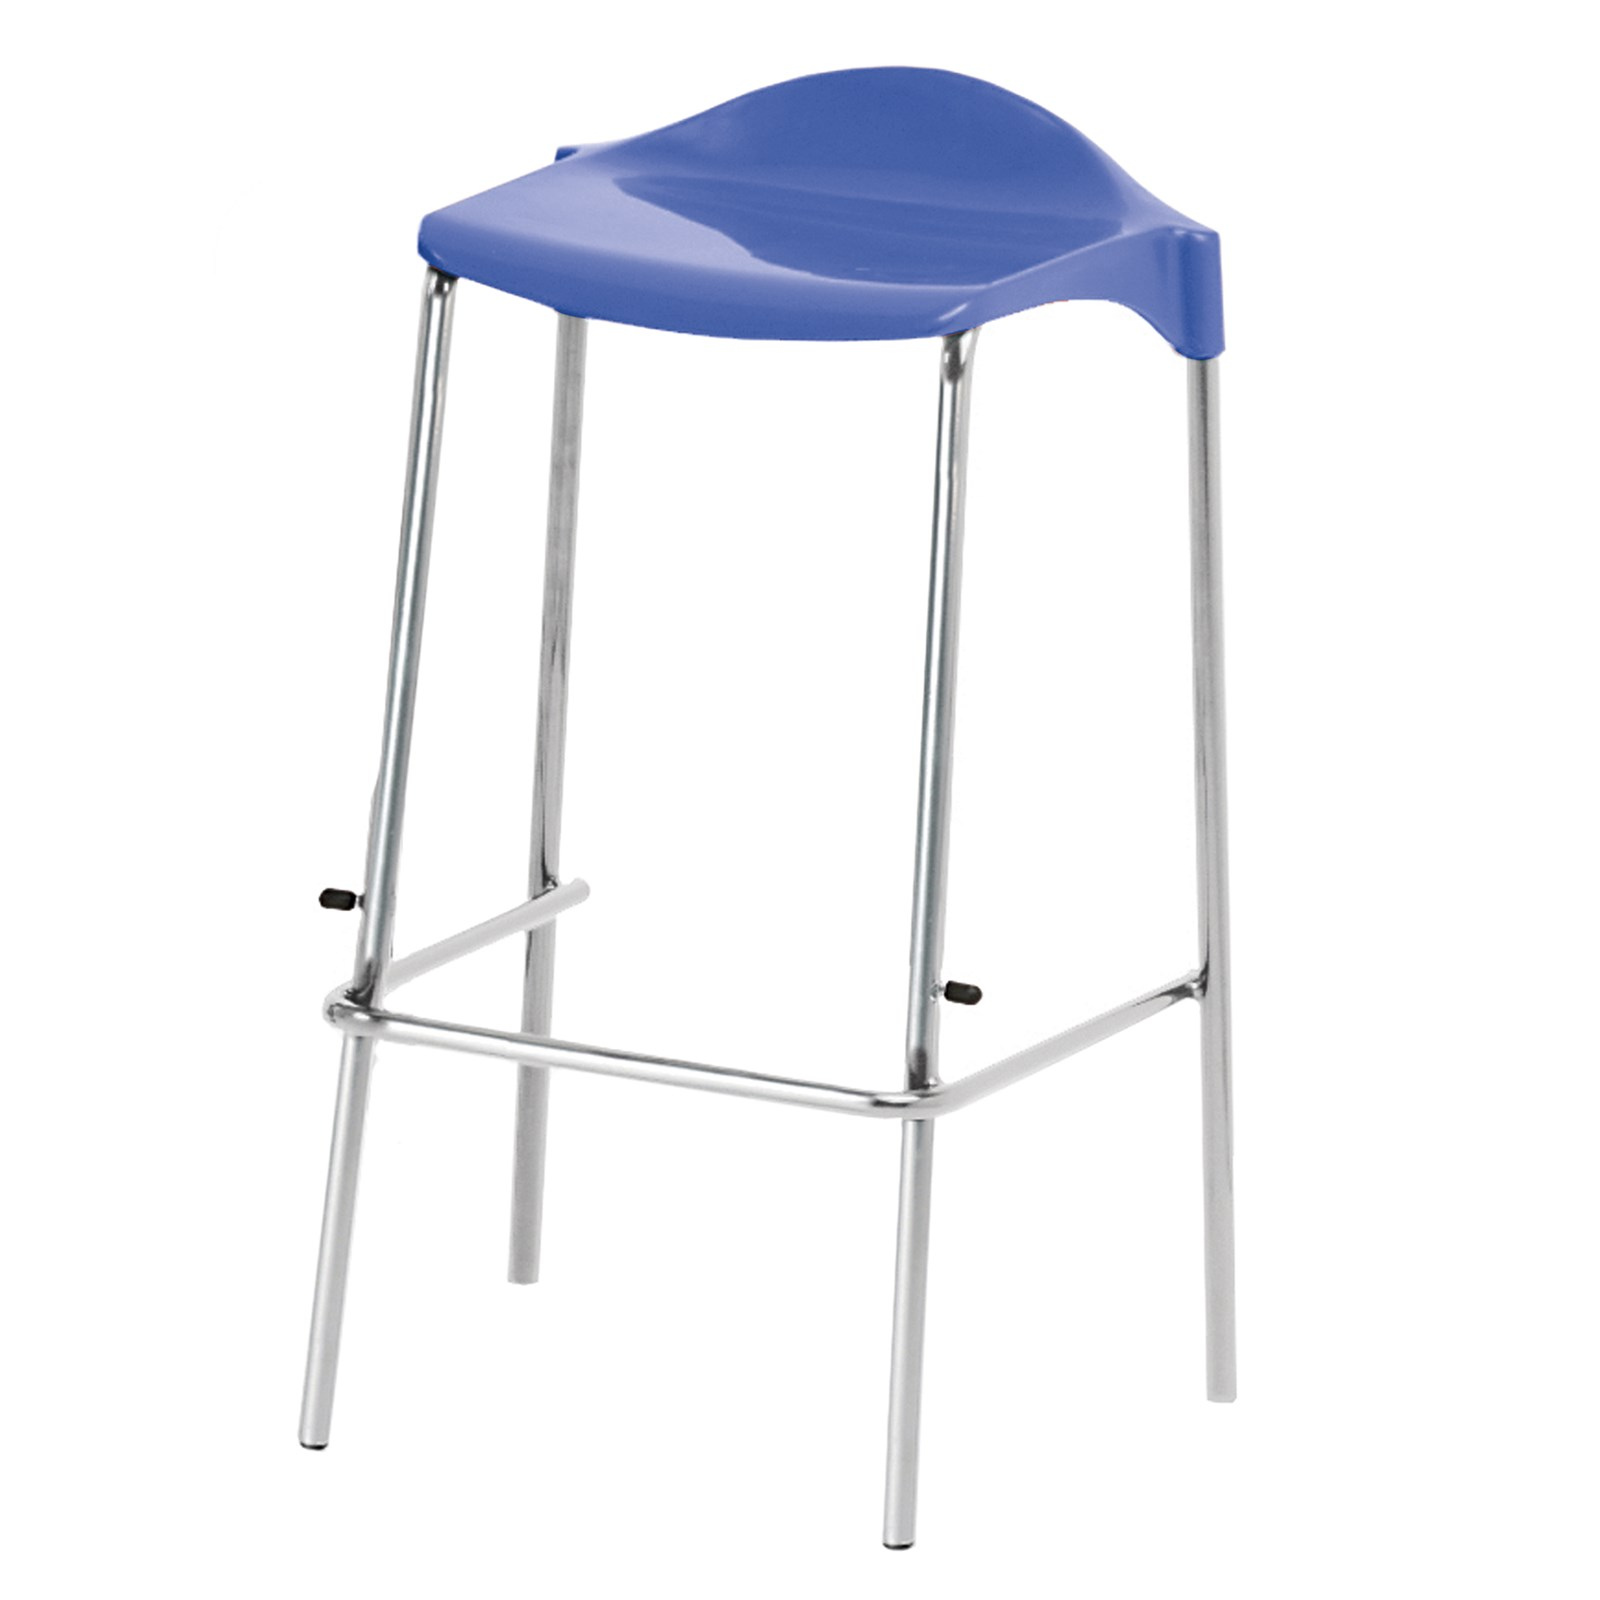 wsm four legged stool seat height 445mm blue hope education